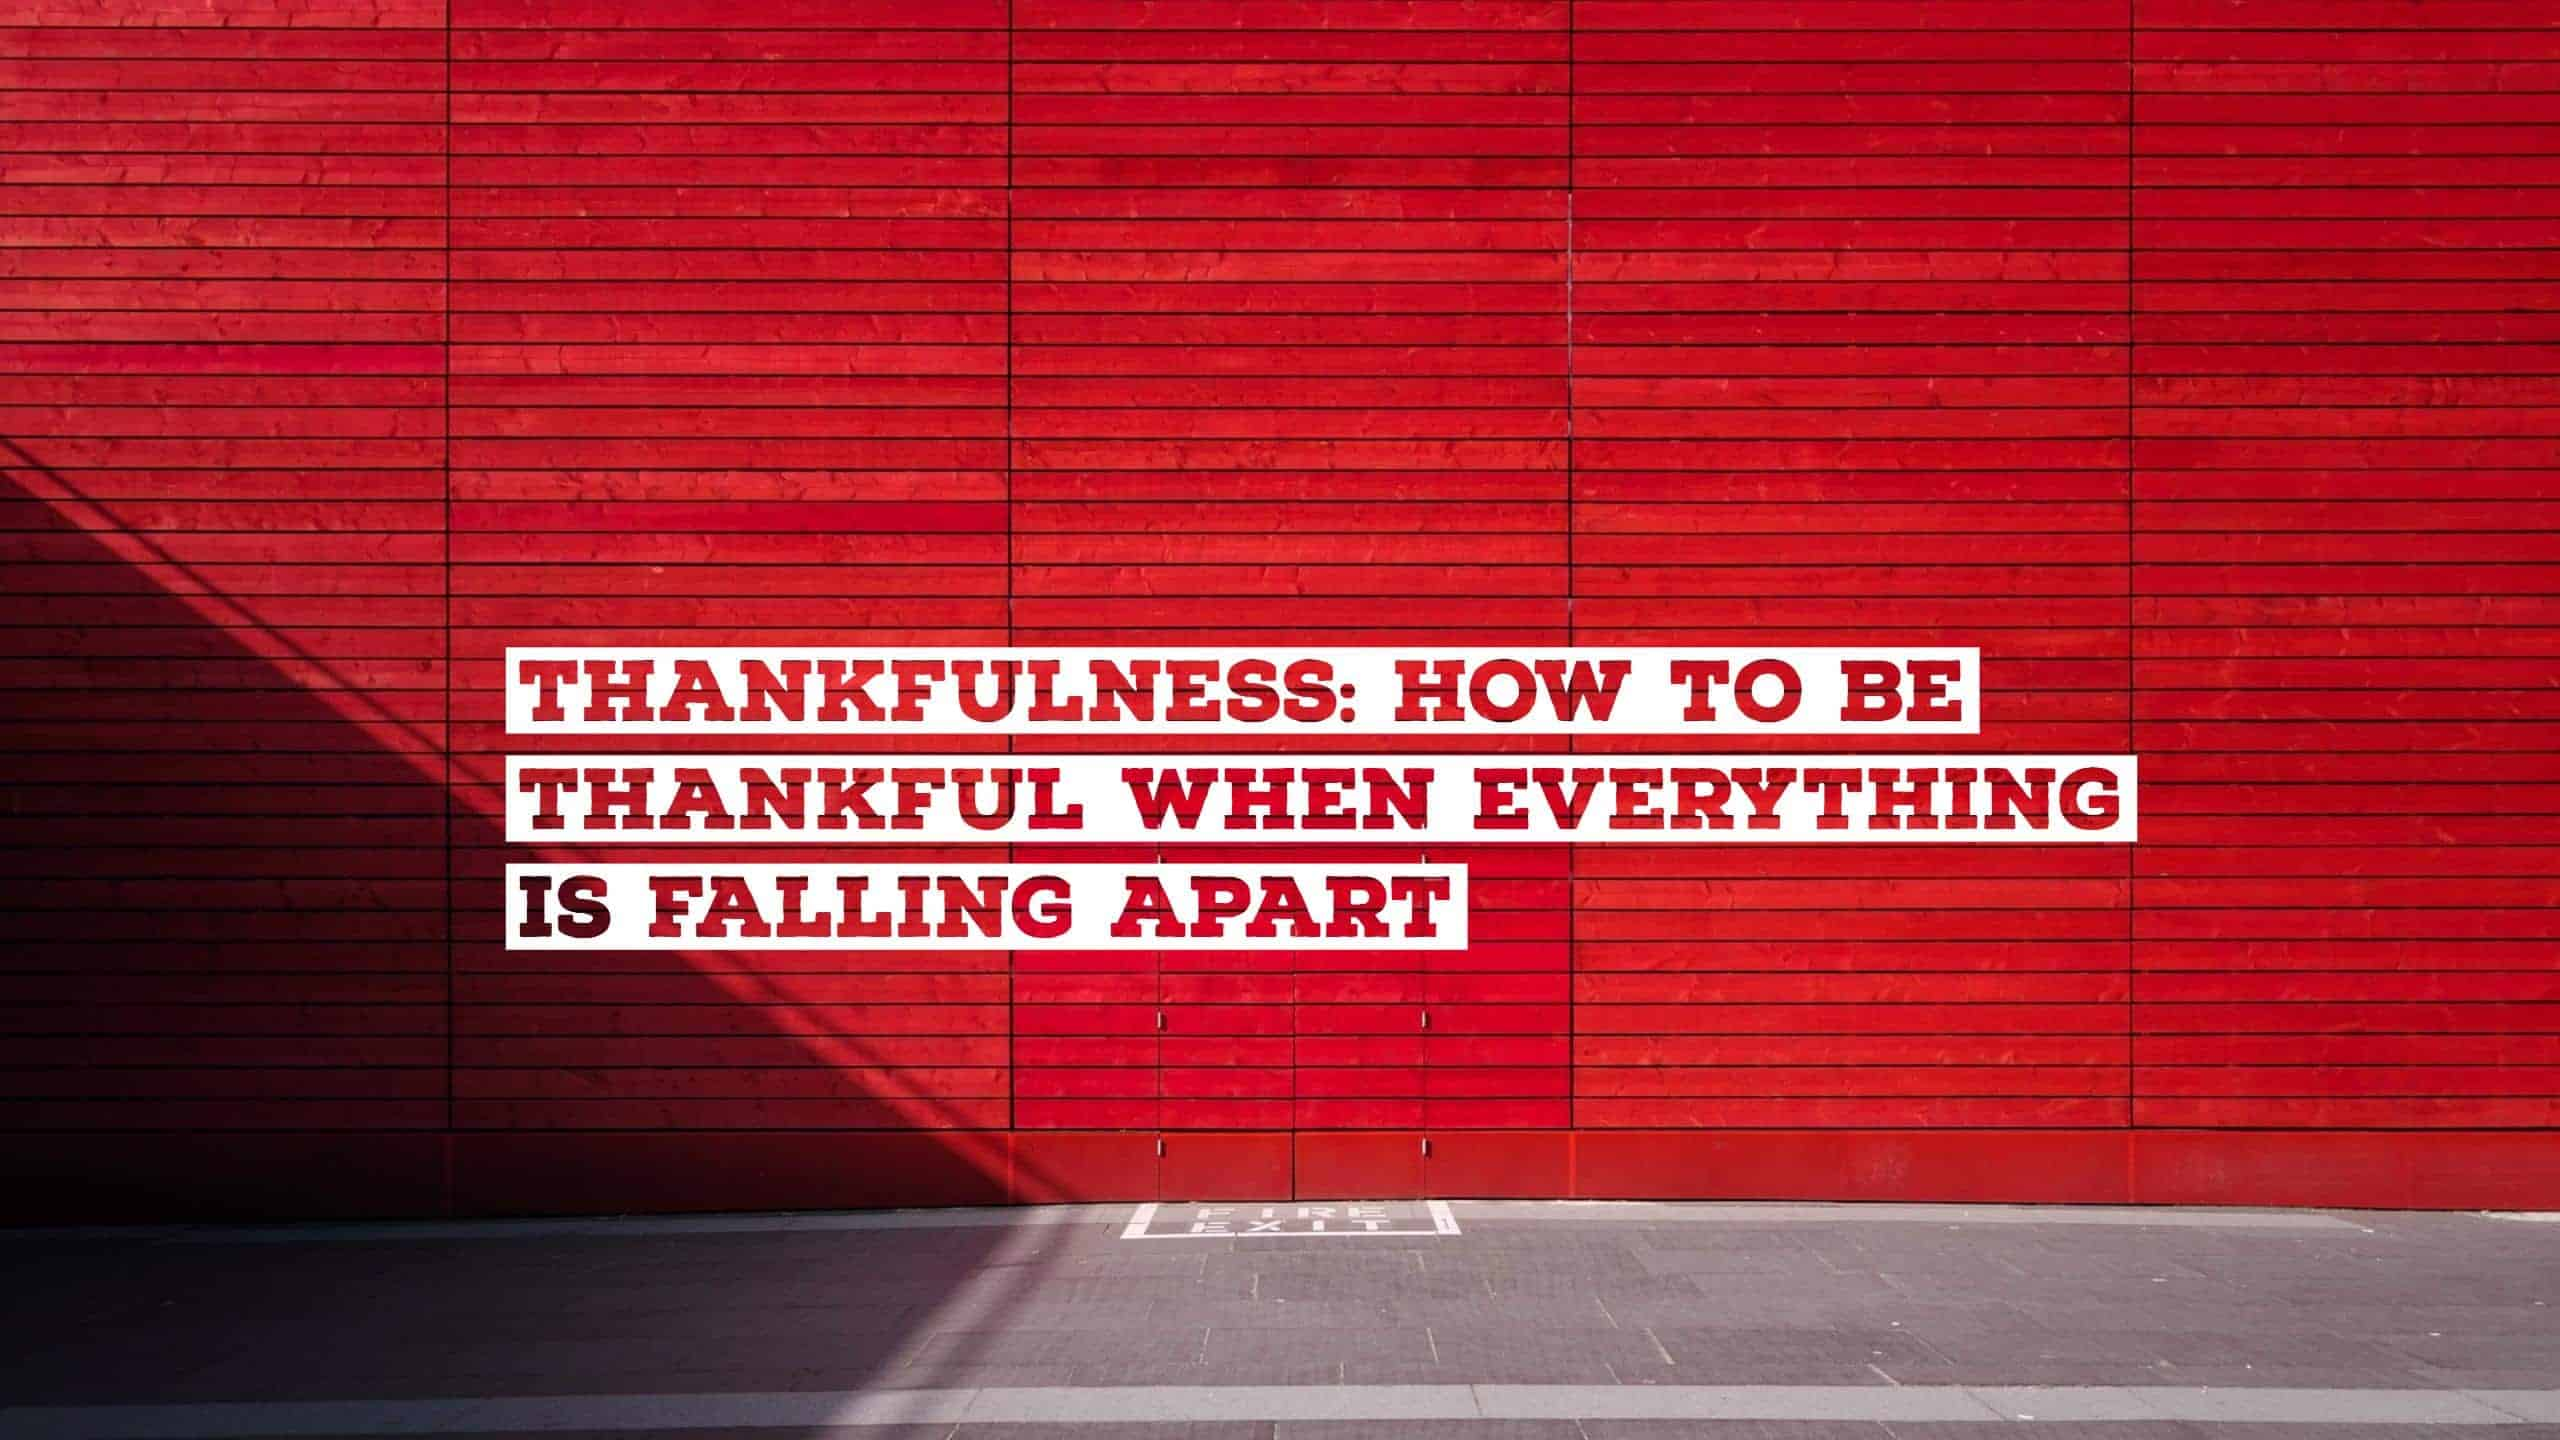 Thankfulness: How To Be Thankful When Everything Is Falling Apart